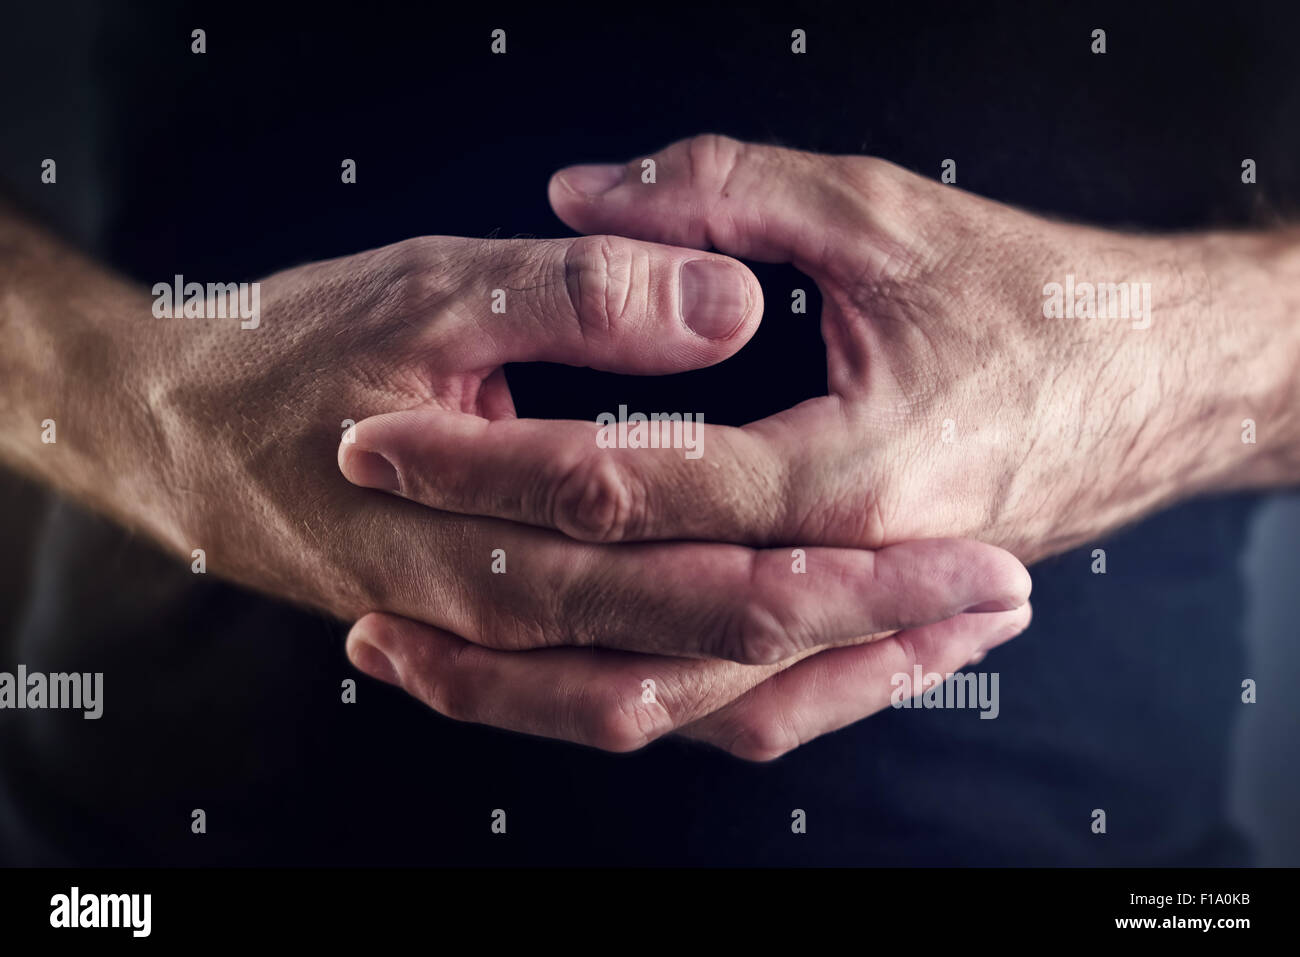 Thumb twiddling, male hands twiddling fingers as an example of time-wasting useless activity, close up selective - Stock Image